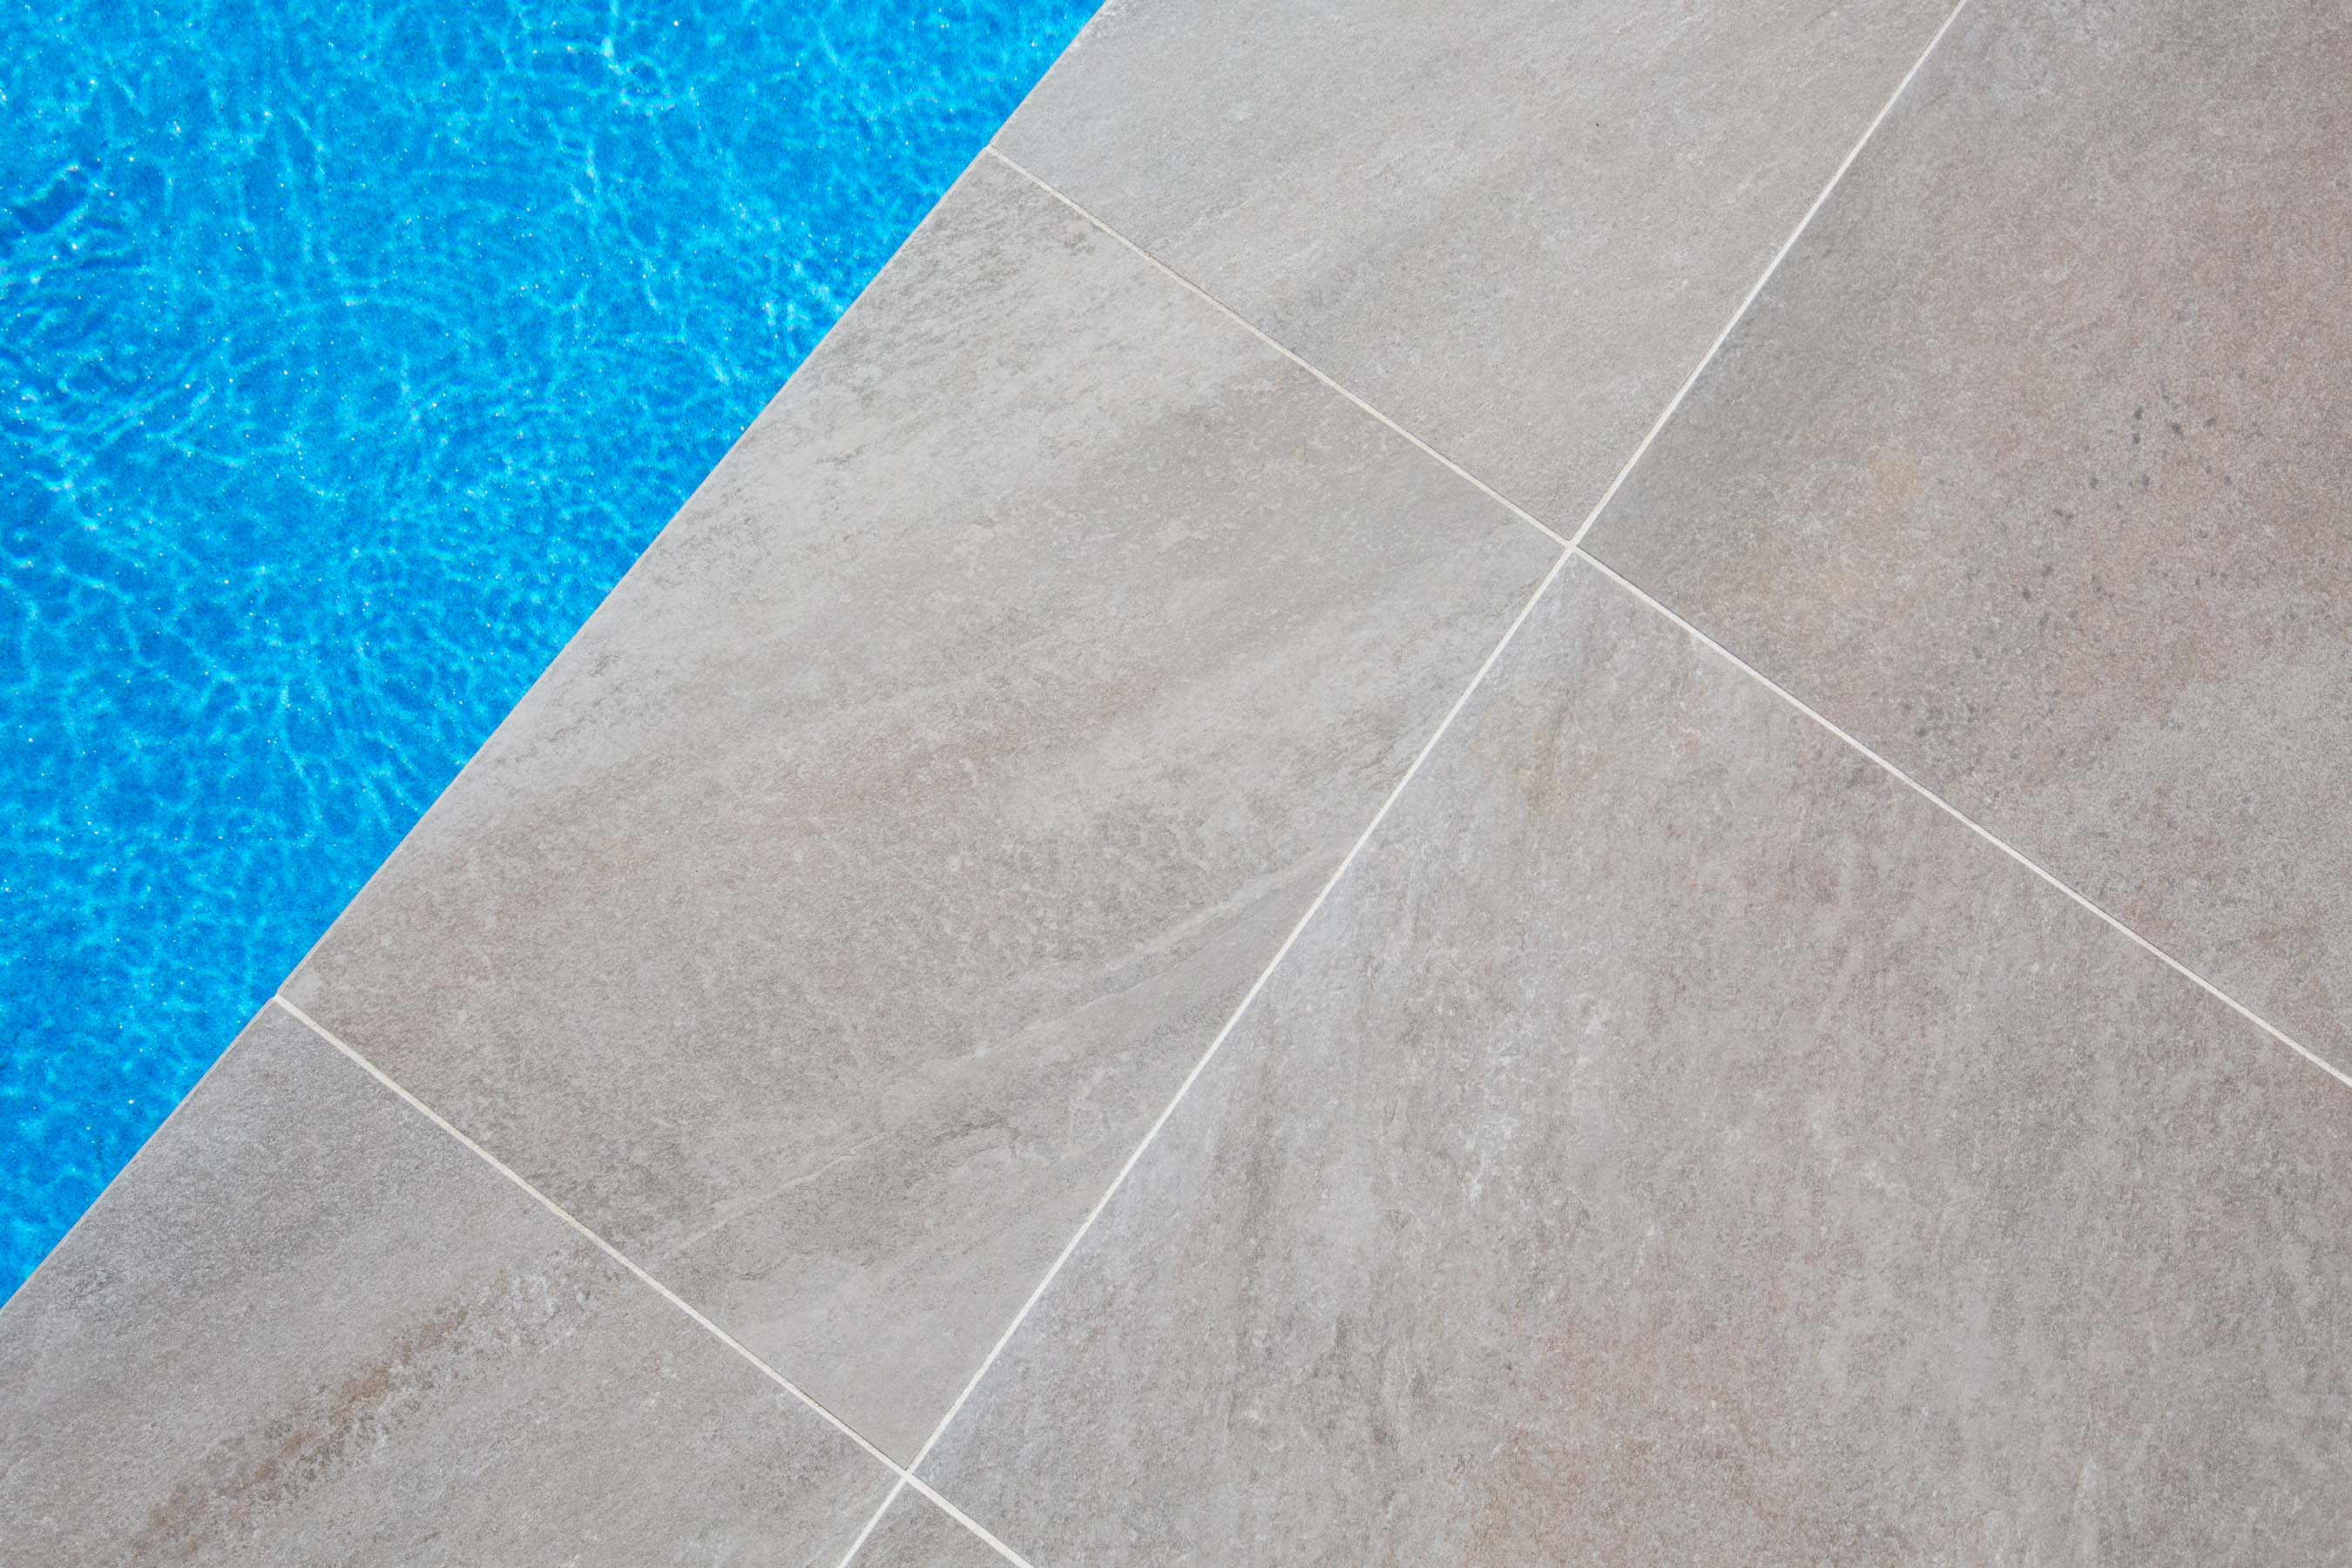 Porcelain-Pavers-Outdoor-20 Gallery fossil-grey-01